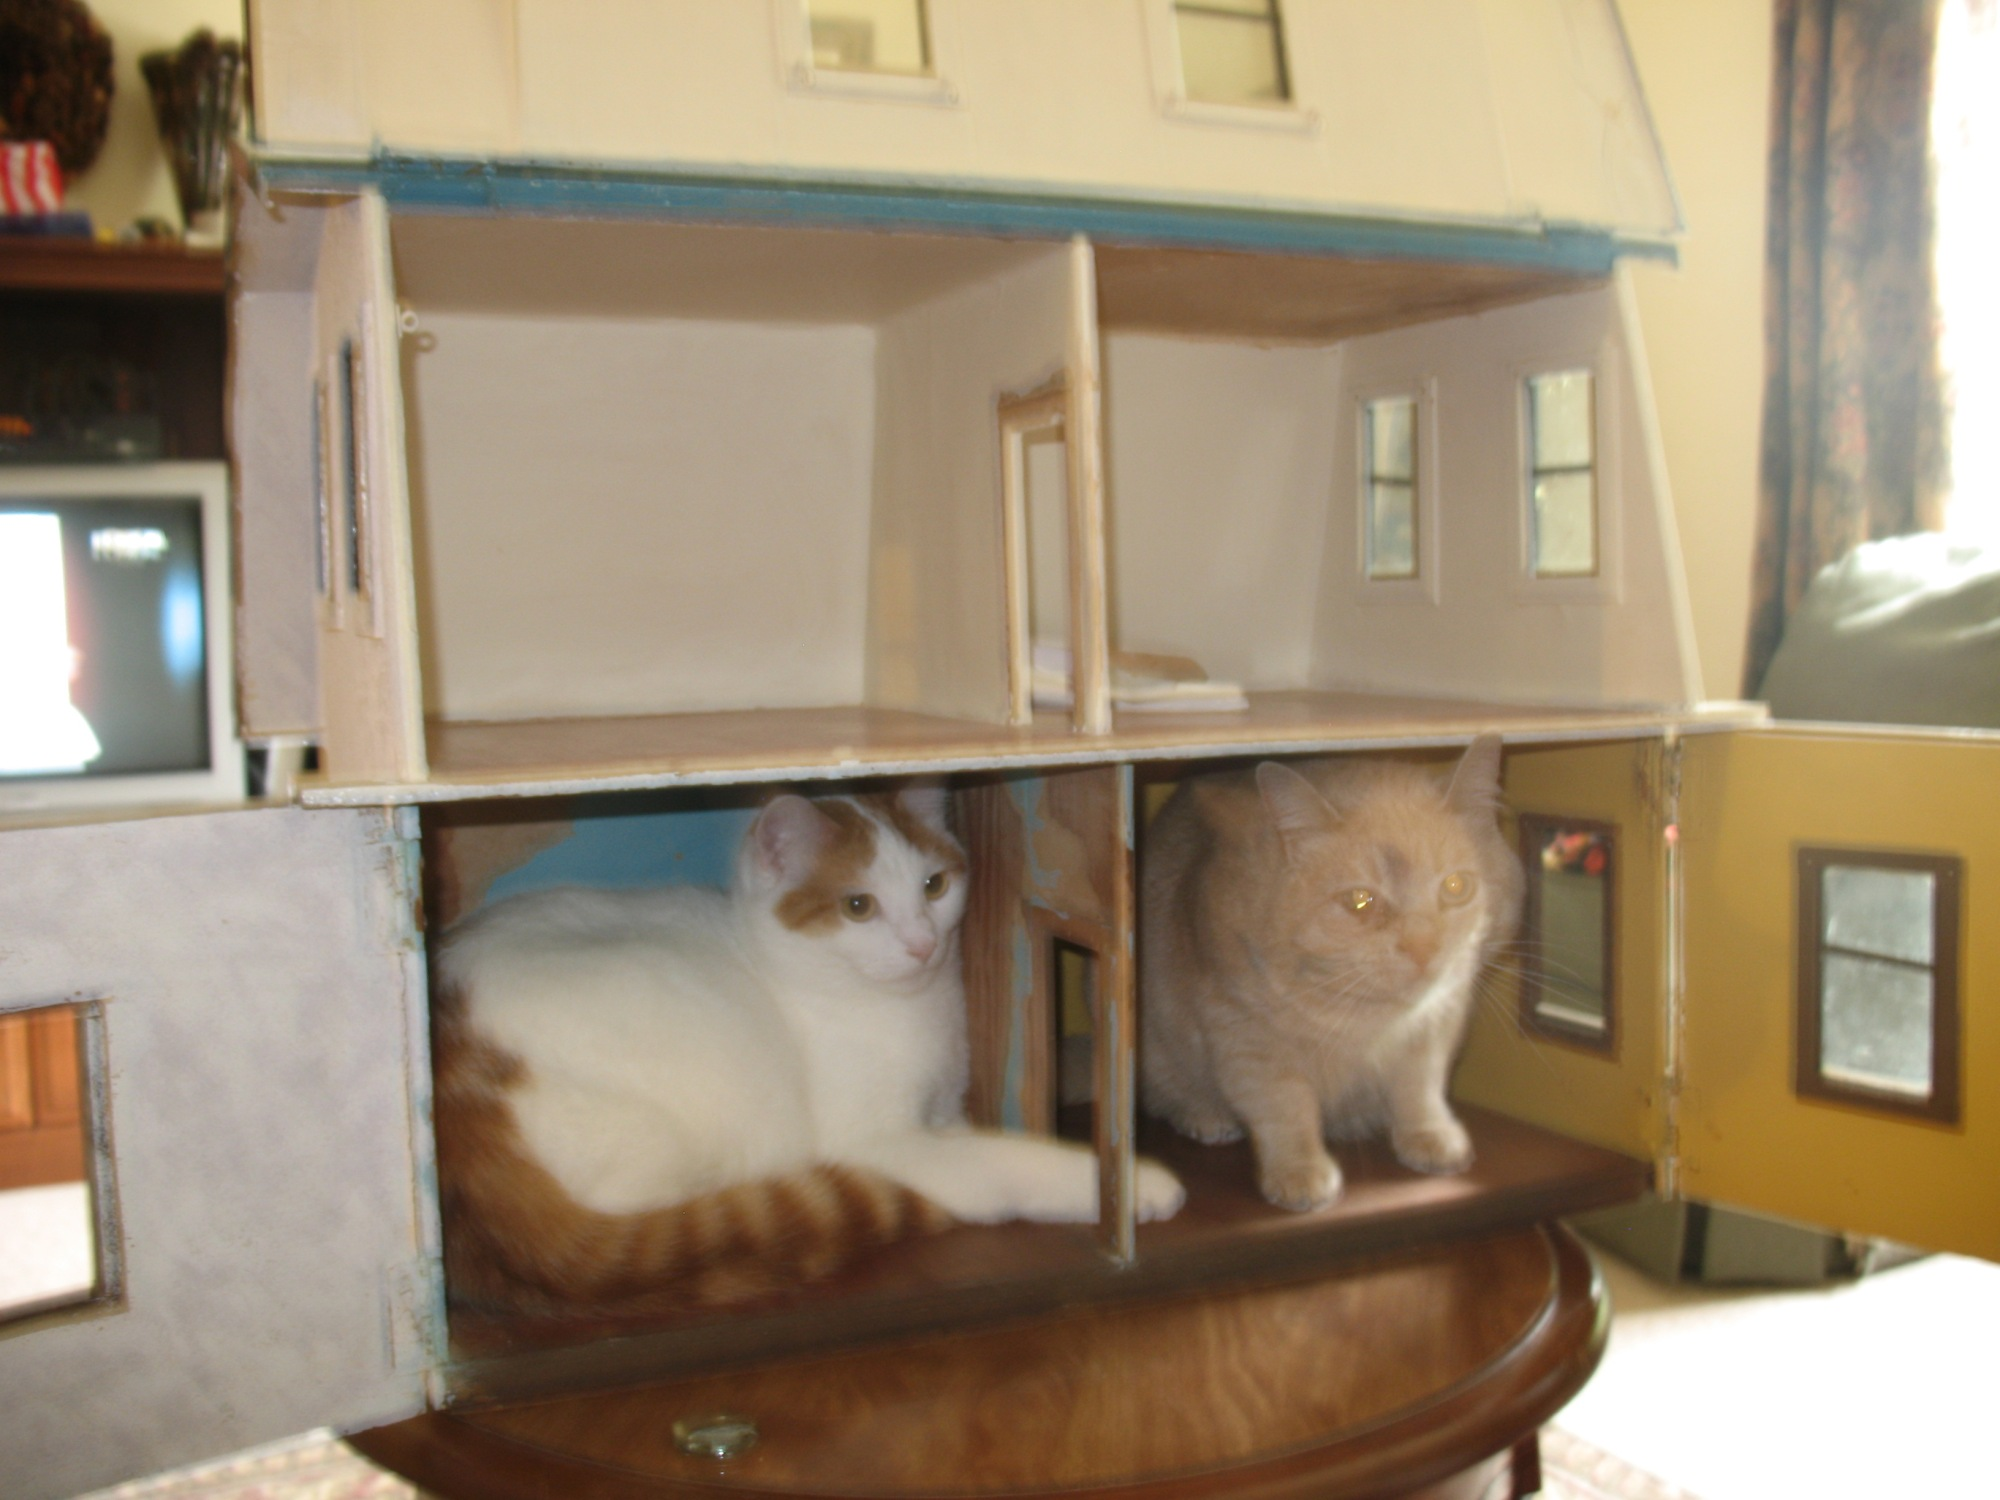 Wompus and Tails just can't stay out of this dollhouse long enough for me to work on it. If they see me go anywhere near it the jump inside. Guess I might have to find a new hobby...lol